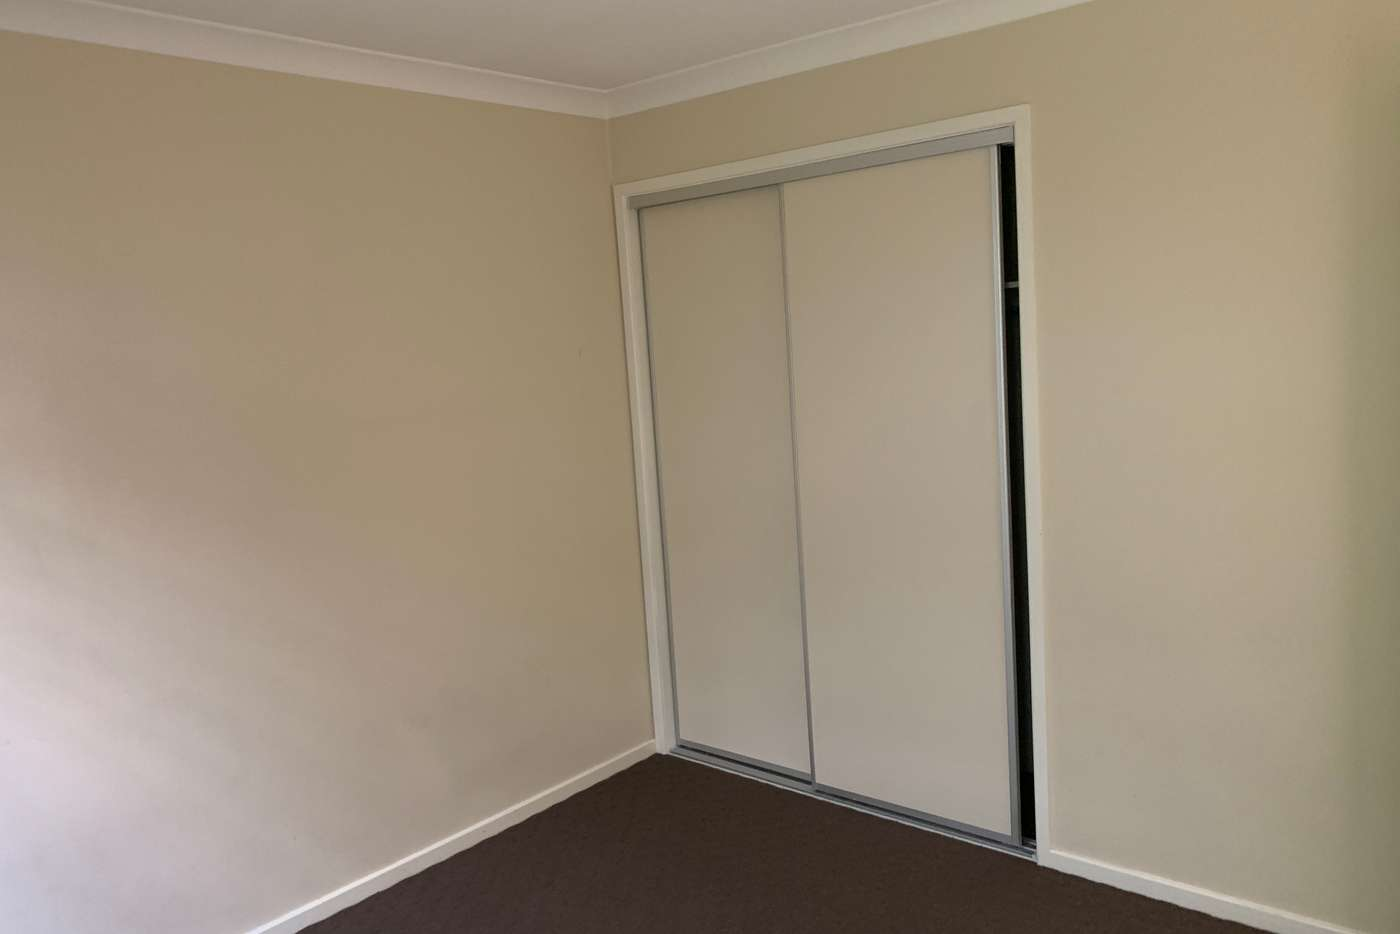 Seventh view of Homely house listing, 10 Sheryn Street, Derrimut VIC 3026